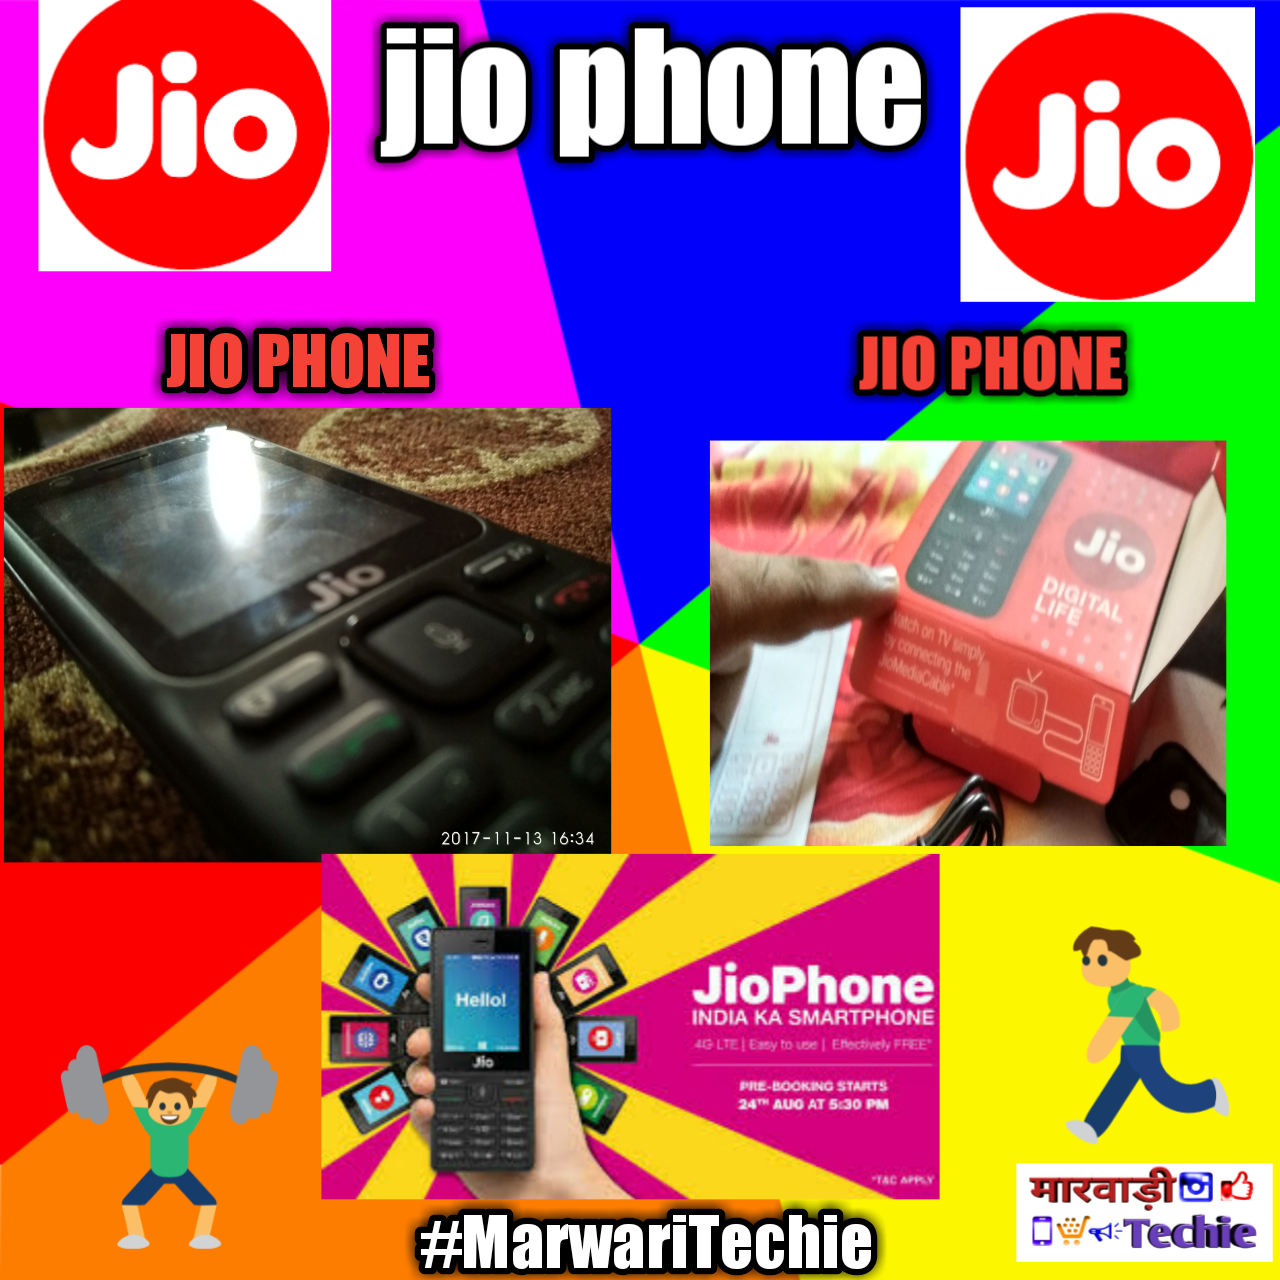 How is the Jio phone? - Quora